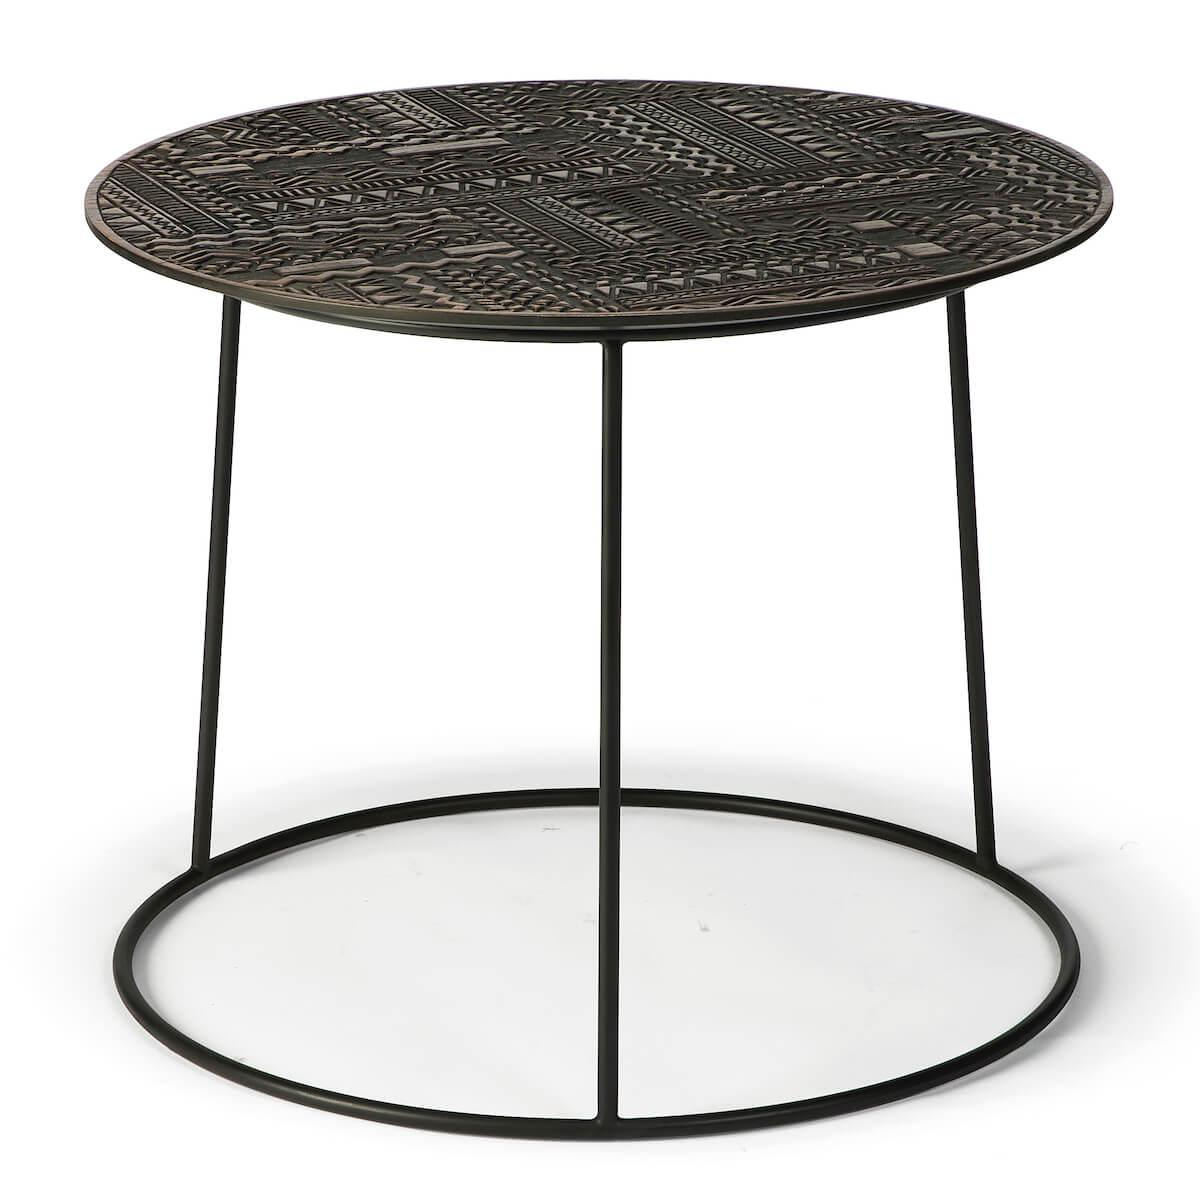 Table d'appoint ronde 65cm TABWA Ethnicraft teck noir